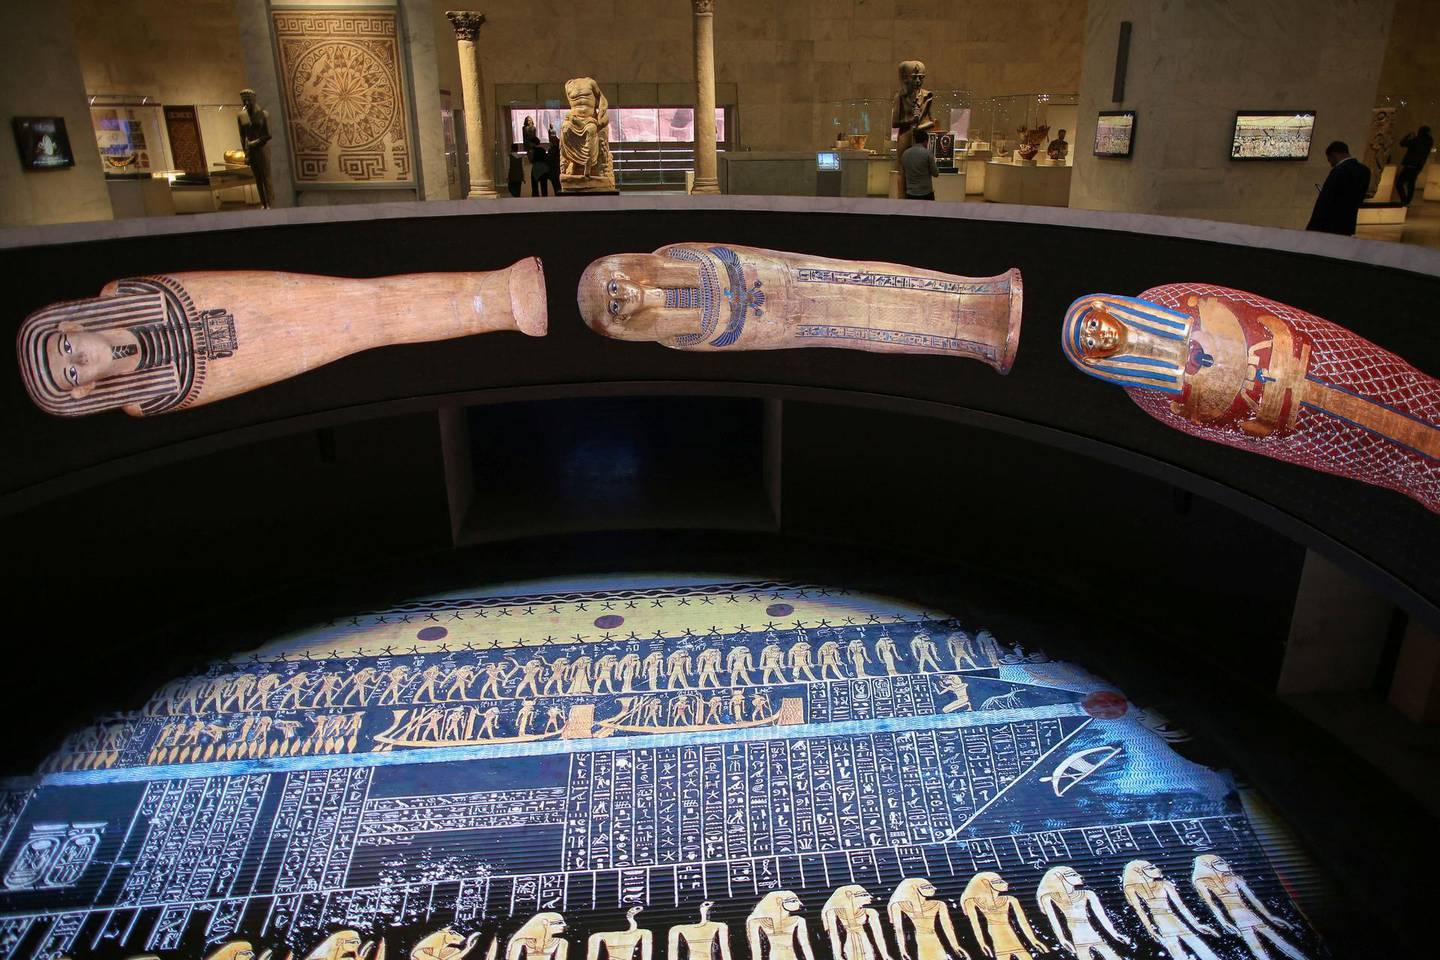 """People visit Egypt's new National Museum of Egyptian Civilisation (NMEC), in the Fustat district of Old Cairo, during its official reopening a day after the Pharaohs' Golden Parade ceremony, on April 4, 2021. - The NMEC which opened its doors to limited exhibits from 2017, opens fully a day after the """"Pharaohs' Golden Parade"""", but the mummies go on display to the general public two weeks later. (Photo by Mahmoud KHALED / AFP)"""